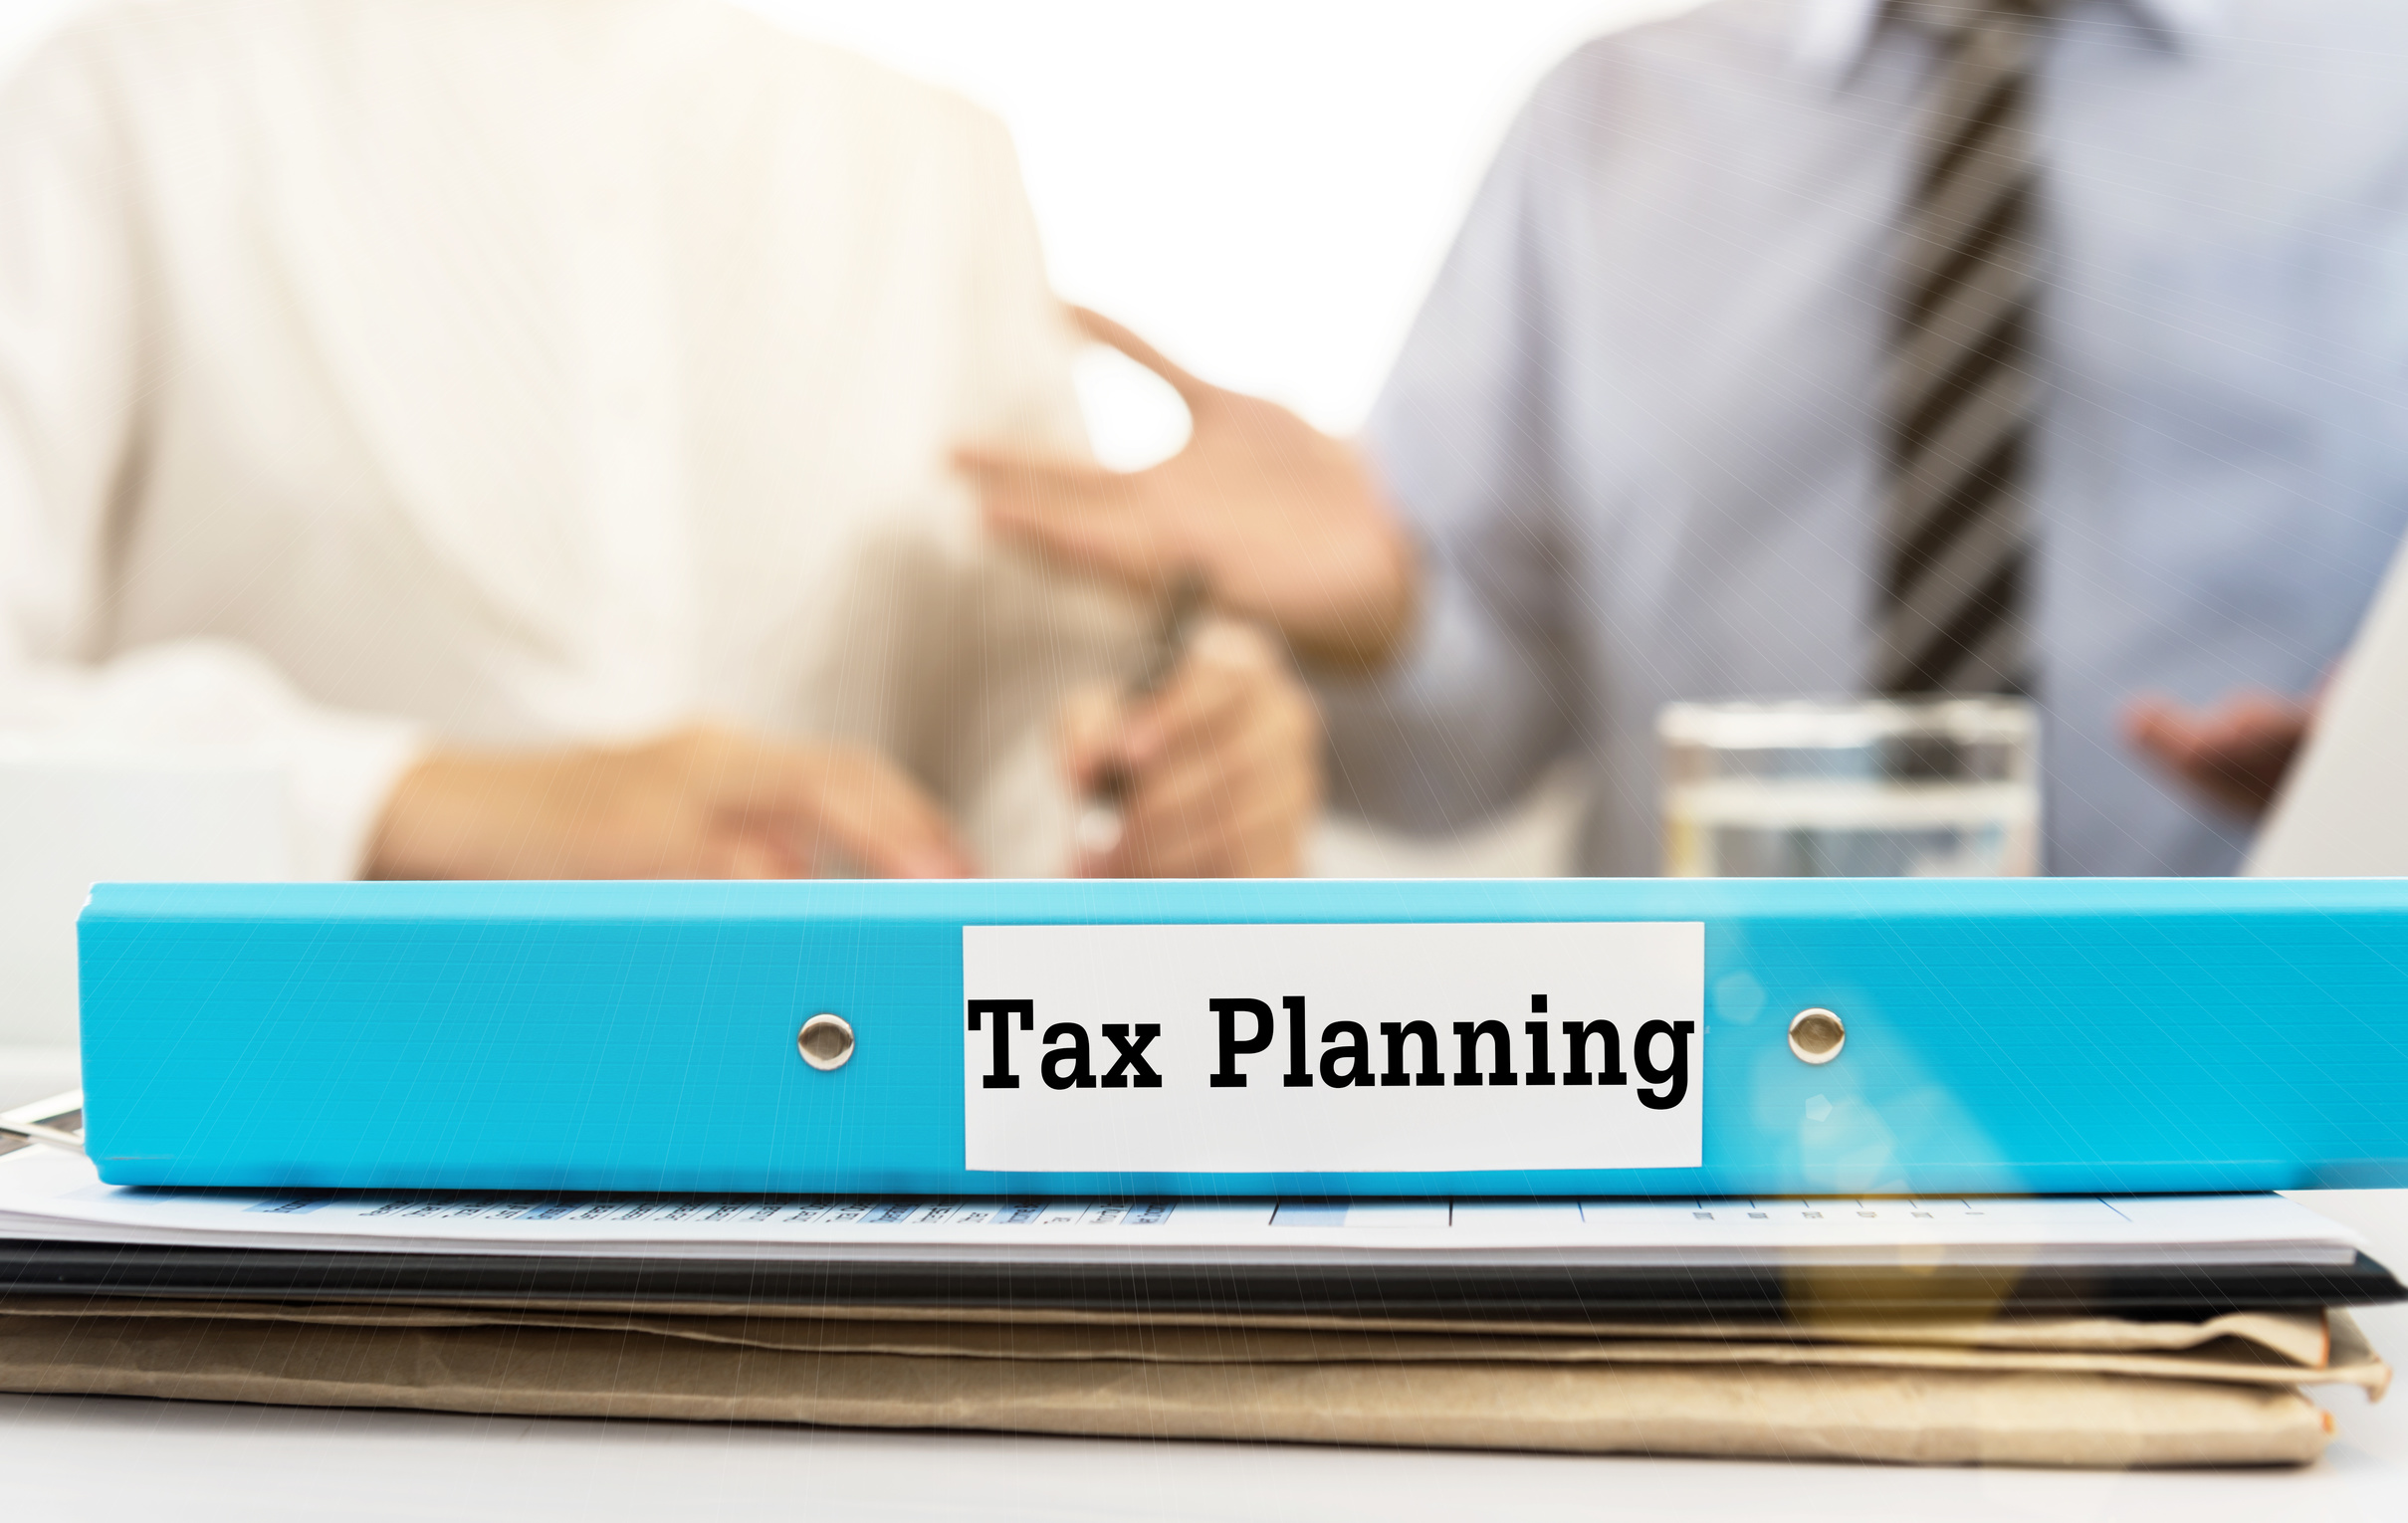 Mytech U | Taxes & Technology: Tax Tips to Help Plan Your IT Investments